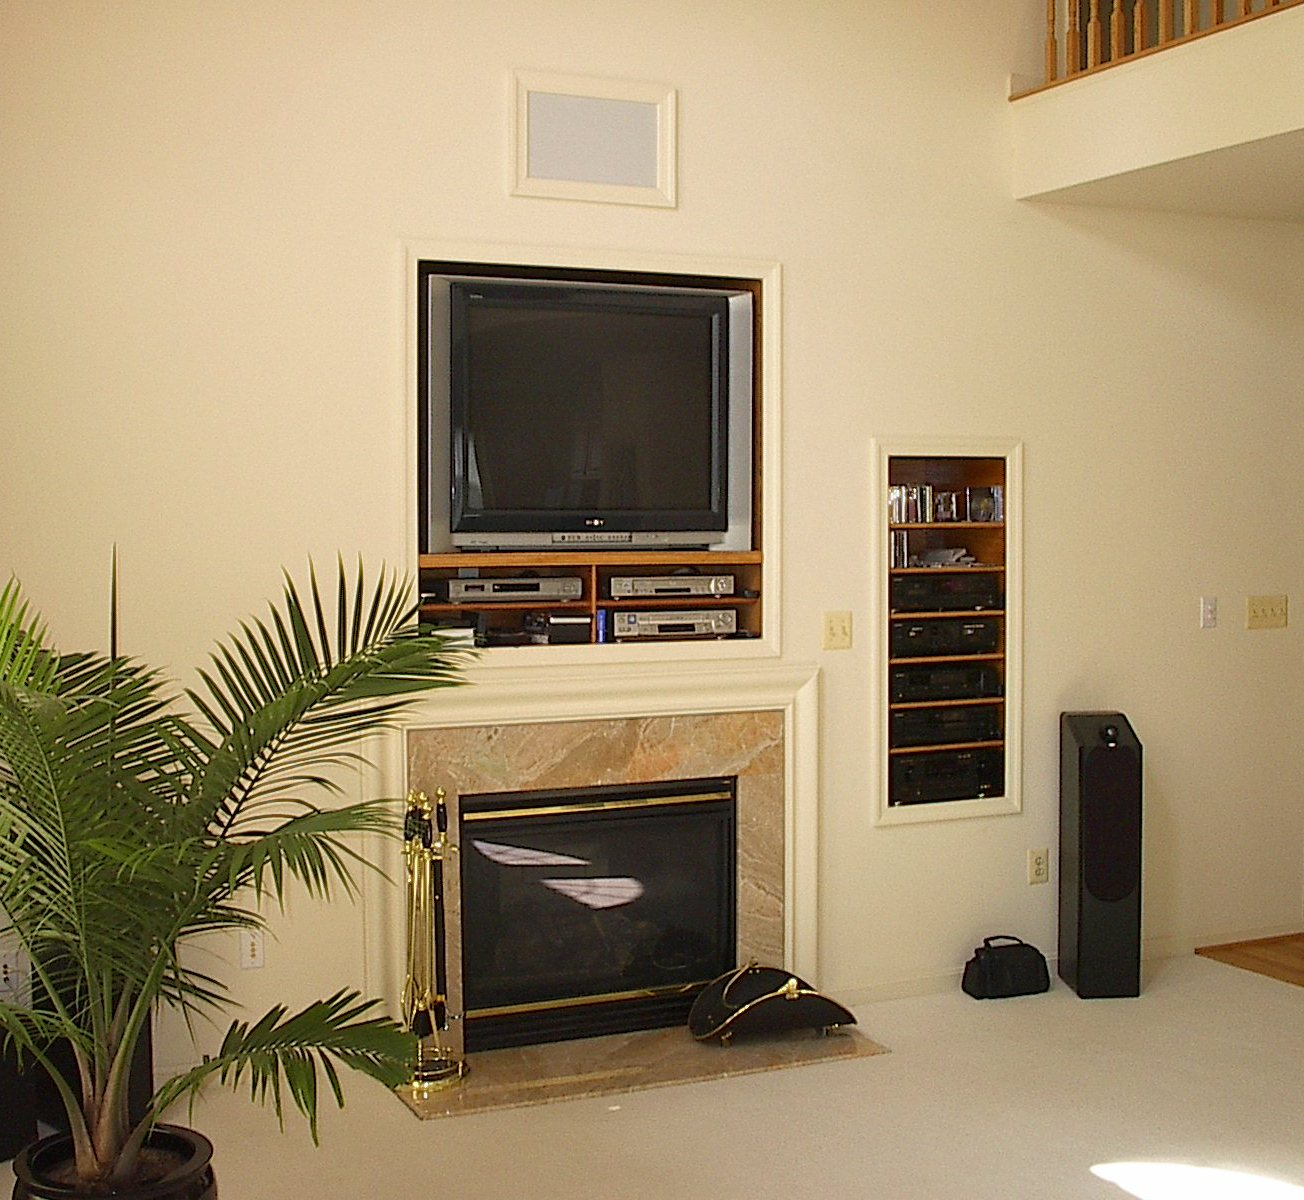 Beau Simple Small In Wall Entertainment Center With Fireplace